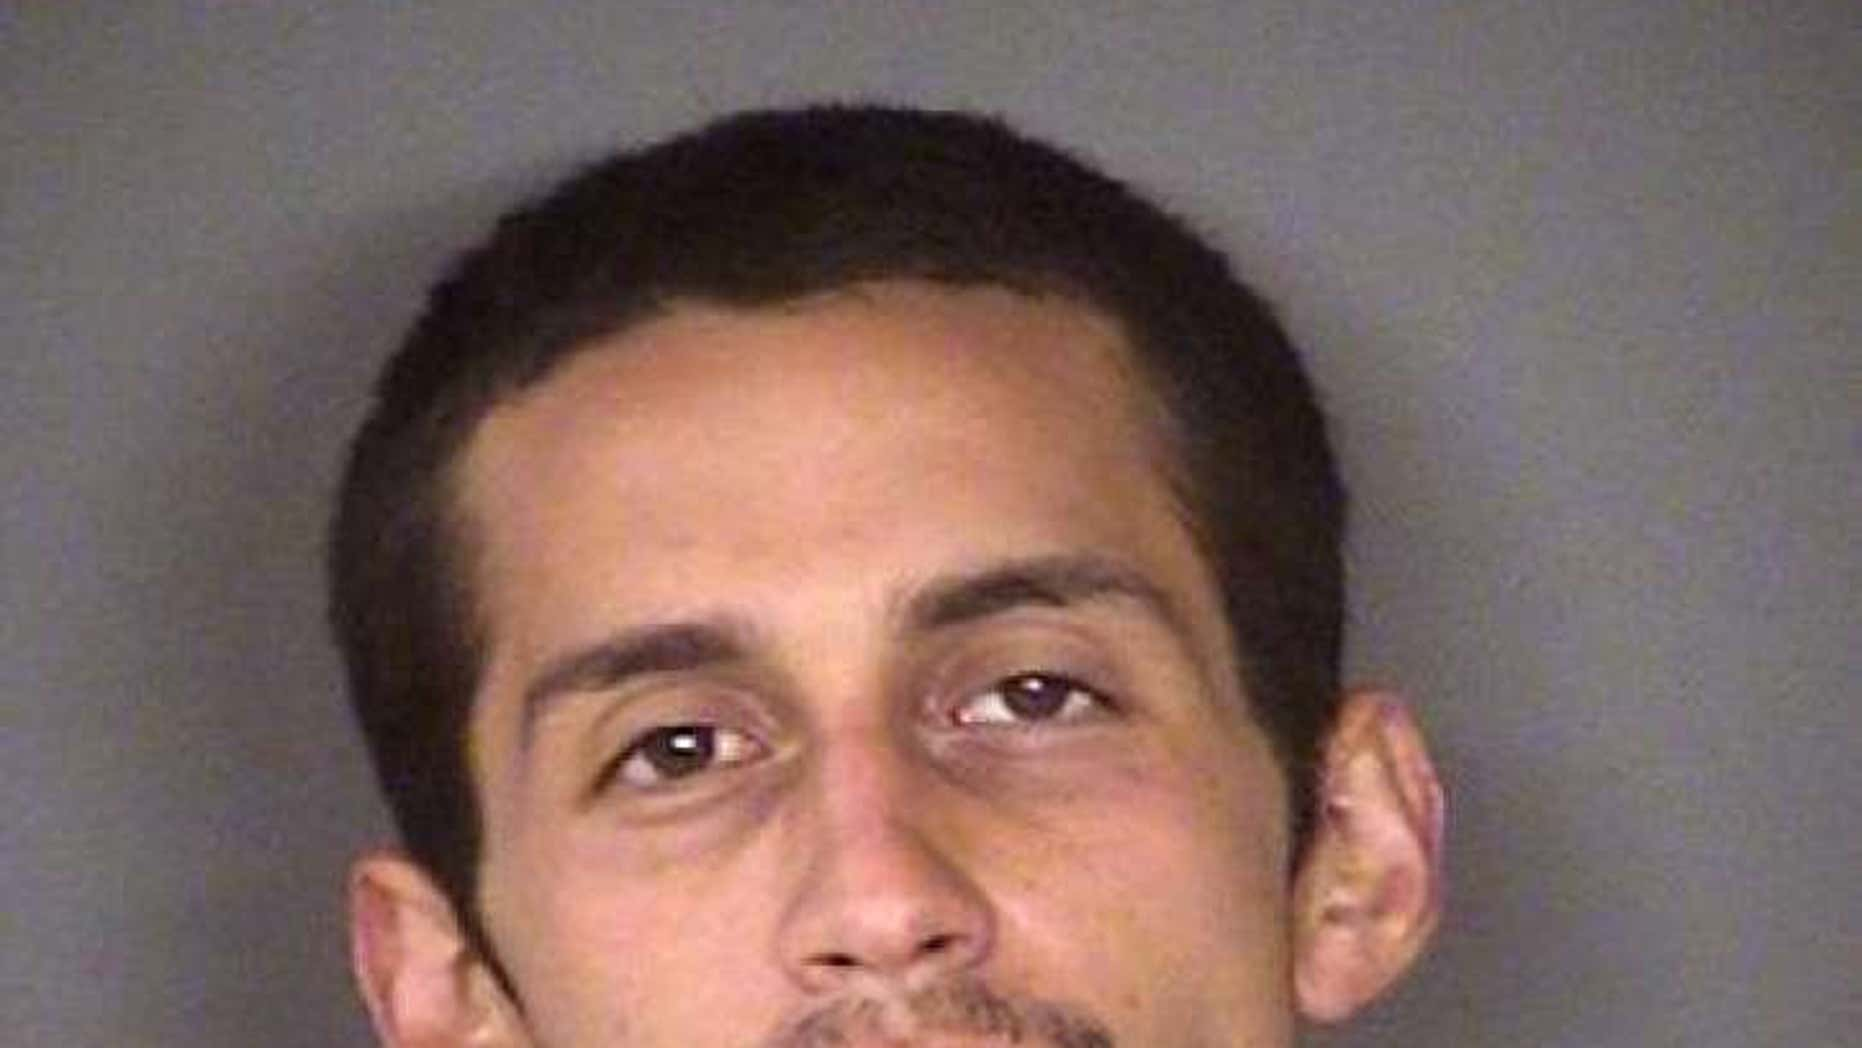 Jesse David Vasquez III, 24, is charged with killing his father, authorities say.